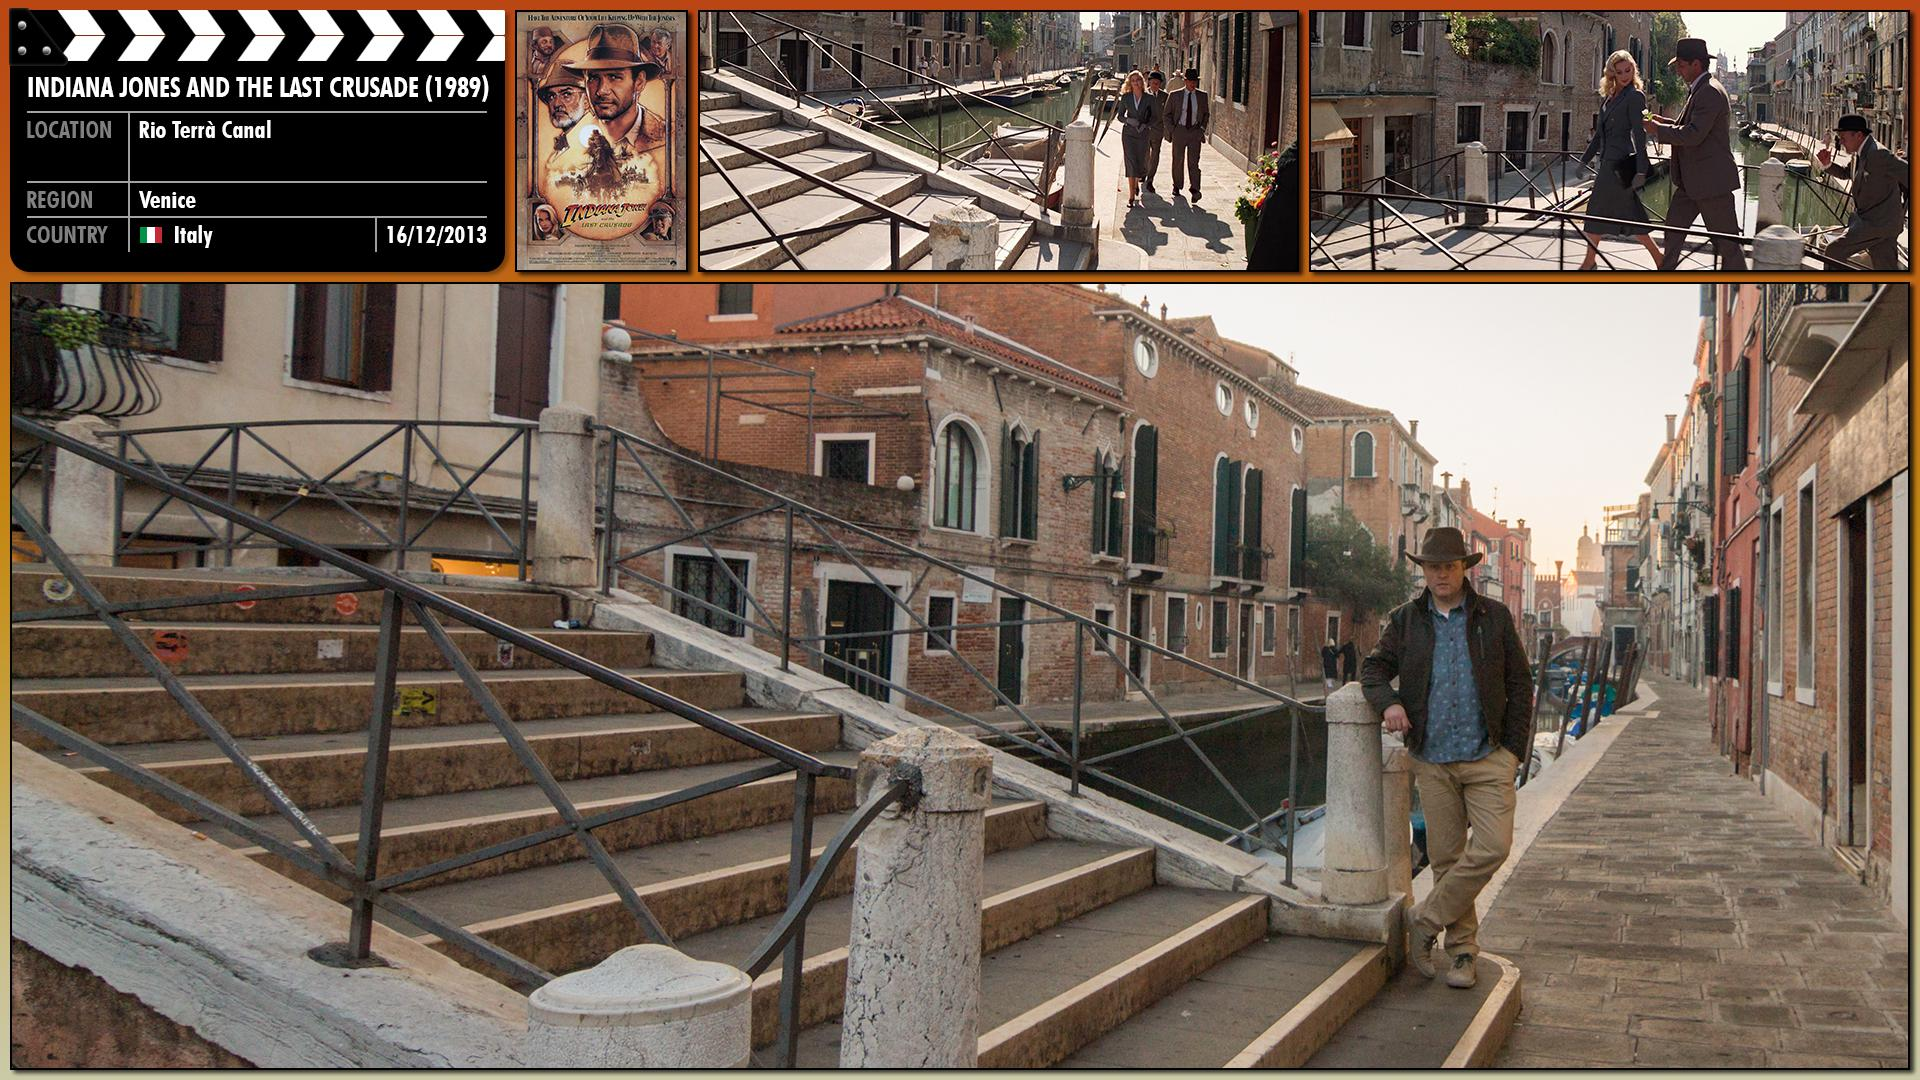 Filming location photo for Indiana Jones and the Last Crusade (1989) 5 of 9